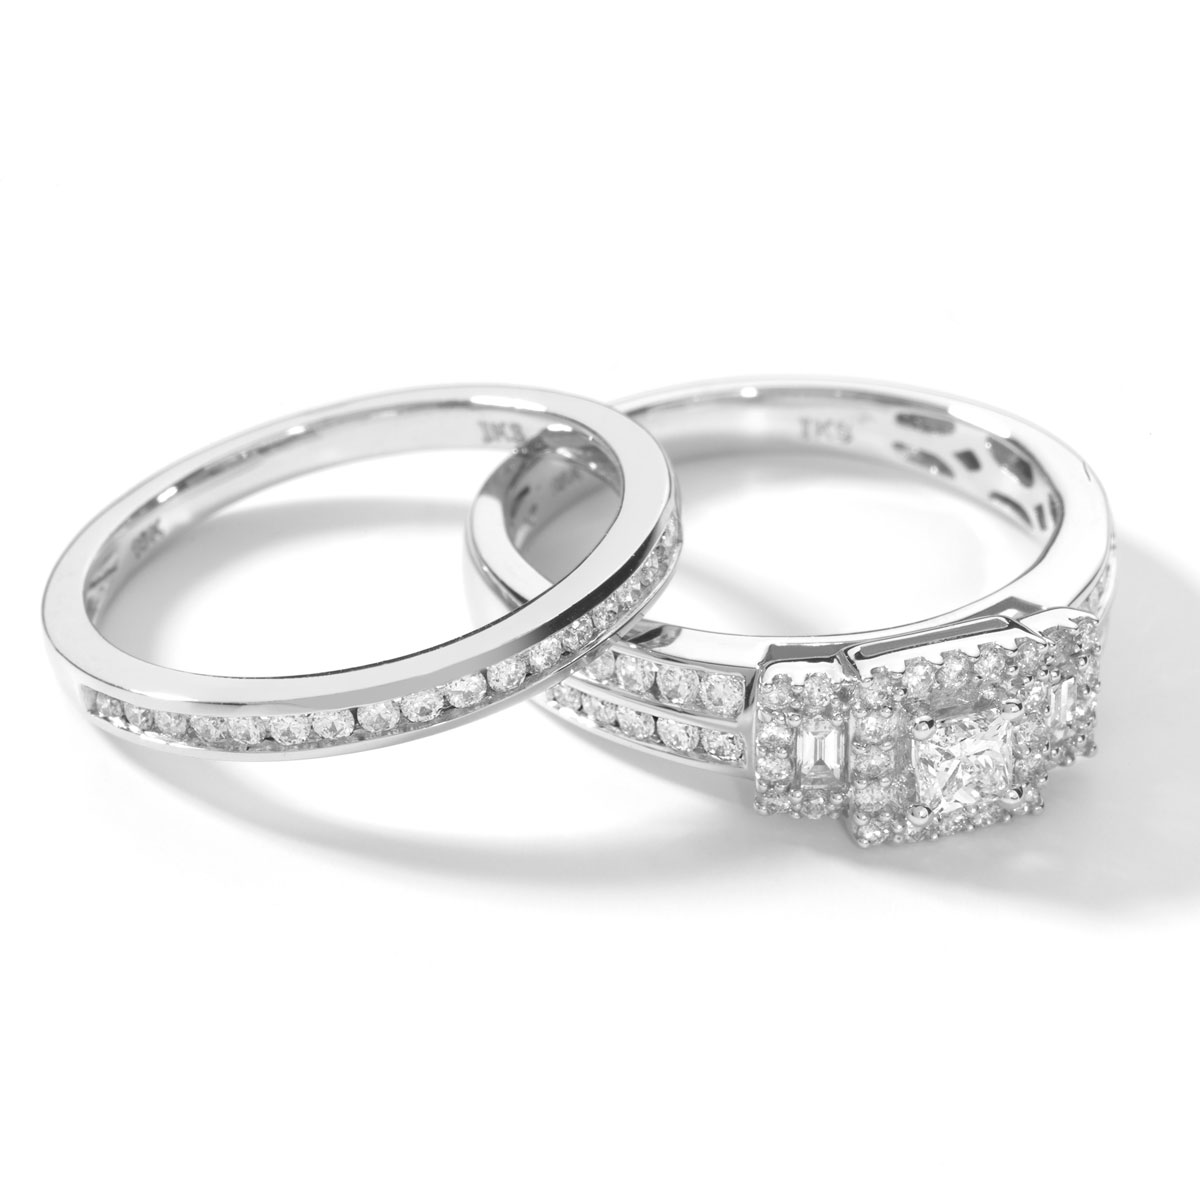 Bague et Alliance demi-tour or blanc diamant - vue VD1